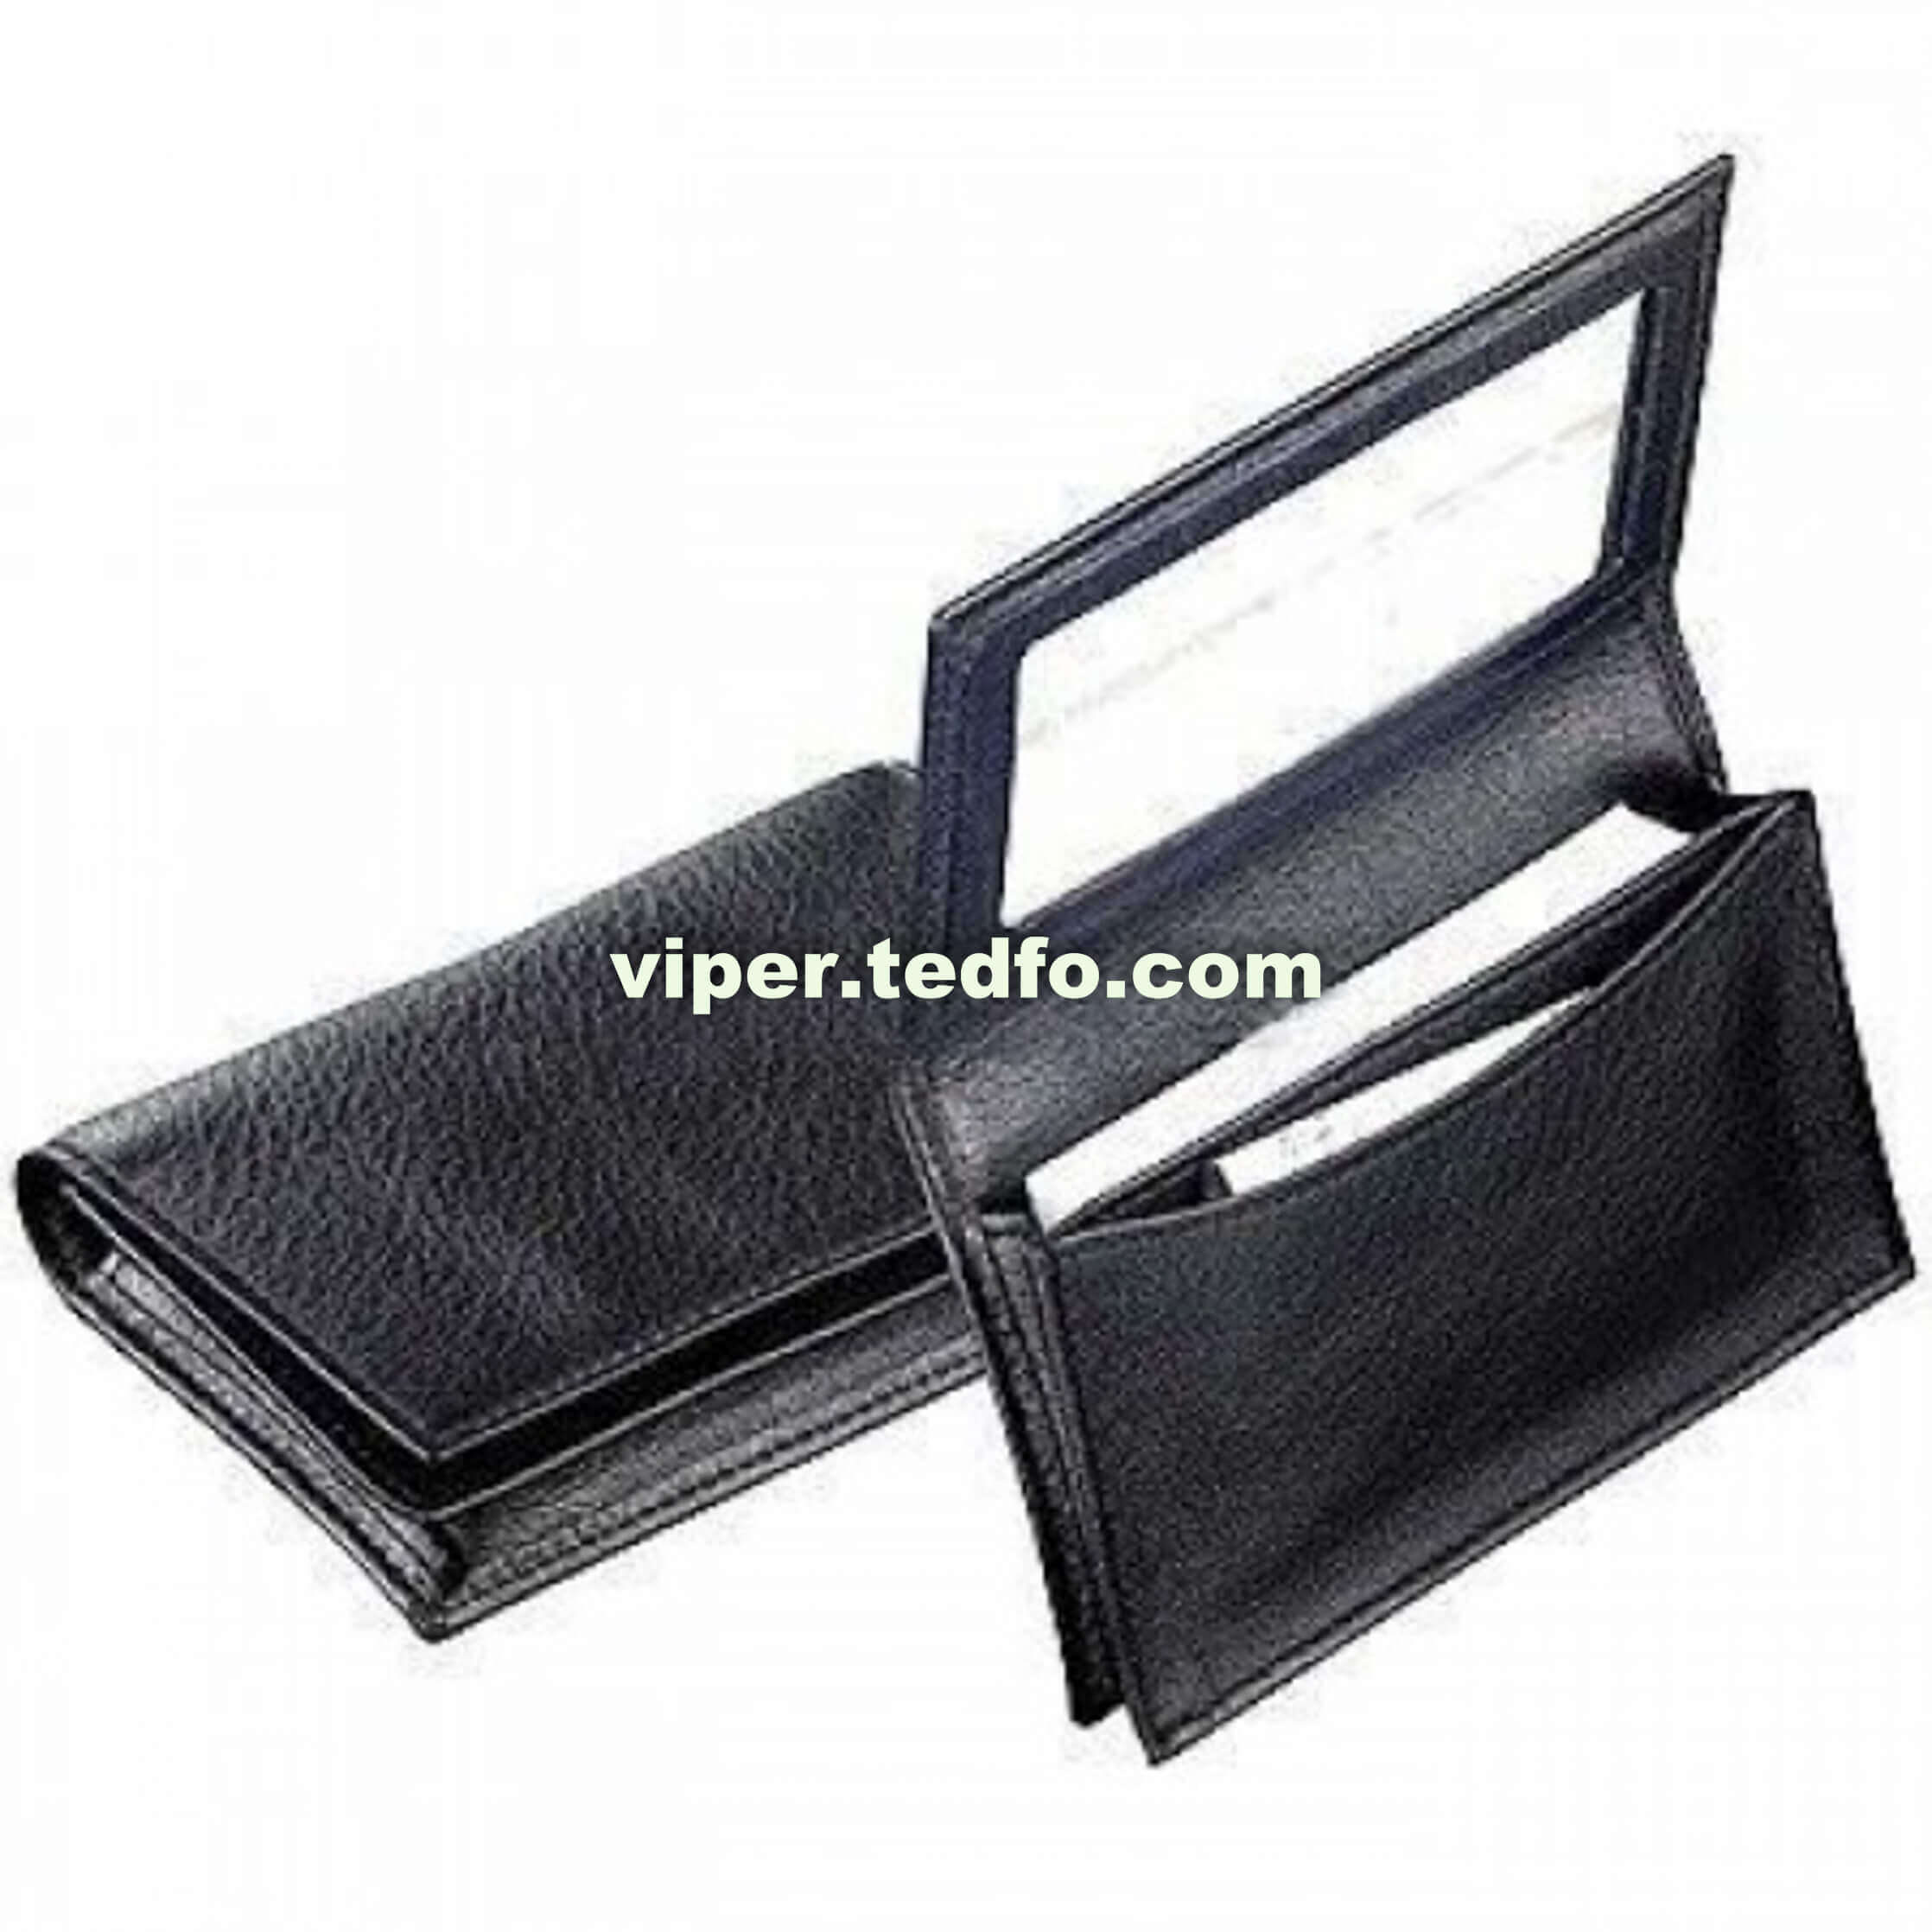 Black Leather Card Holder (VC721),Made in Bangladesh